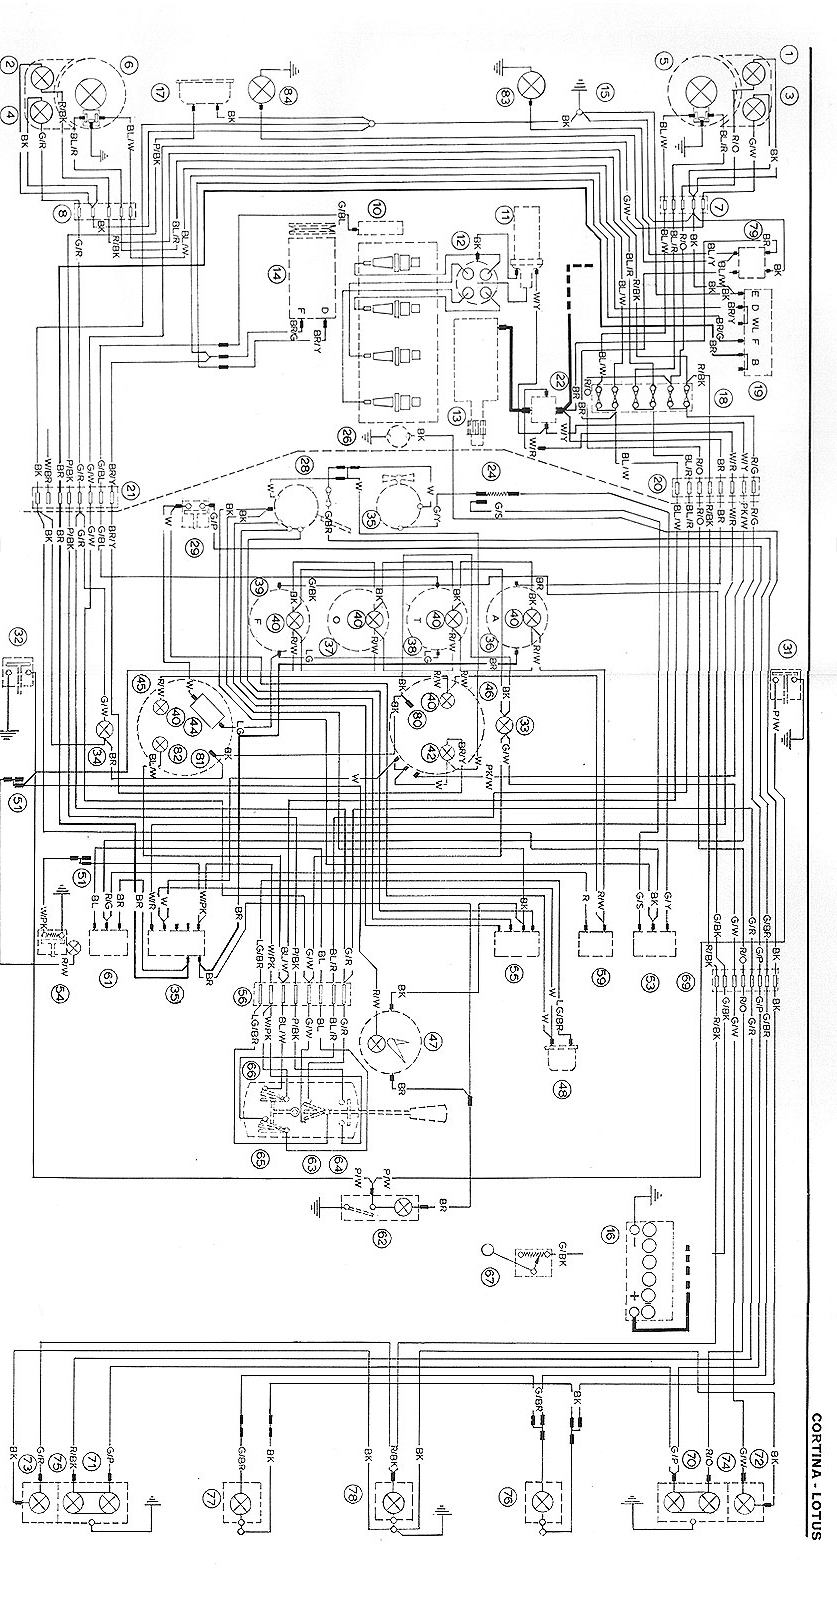 rhdmk2 lotus cortina wiring diagrams ford escort mk2 wiring diagram pdf at bakdesigns.co